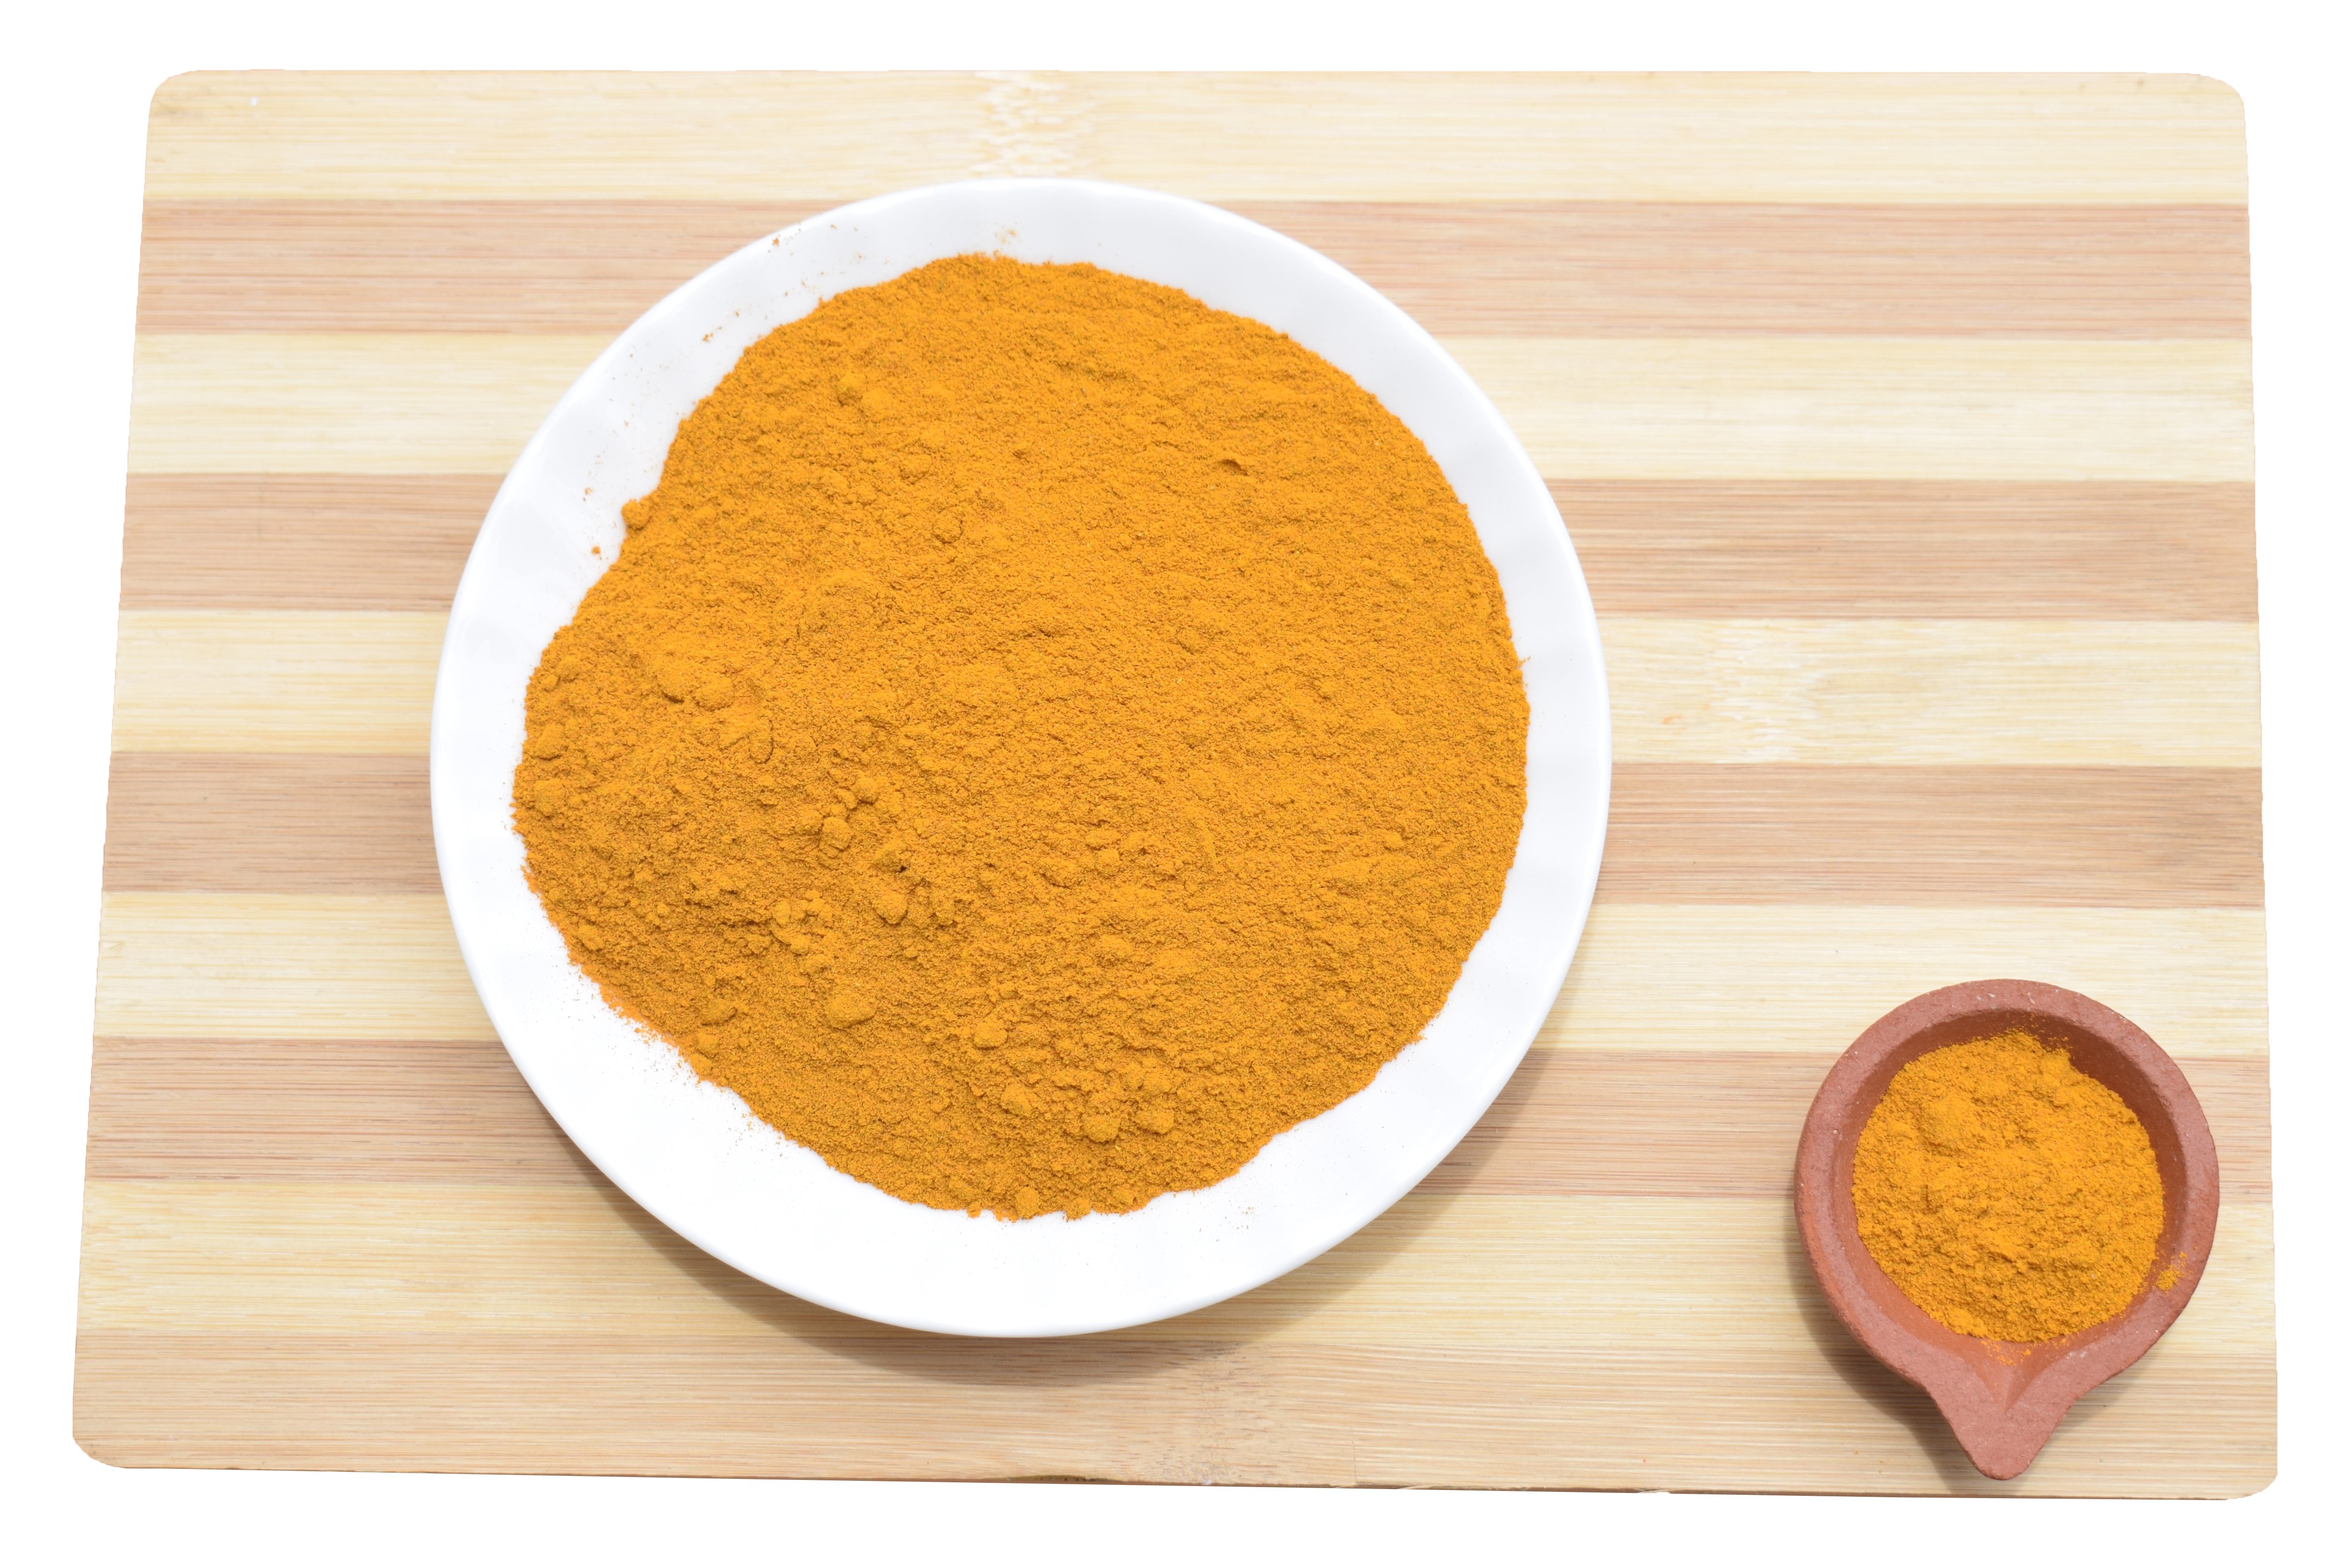 7 Different Ways To Make Turmeric (Manjal) Face Pack At Home